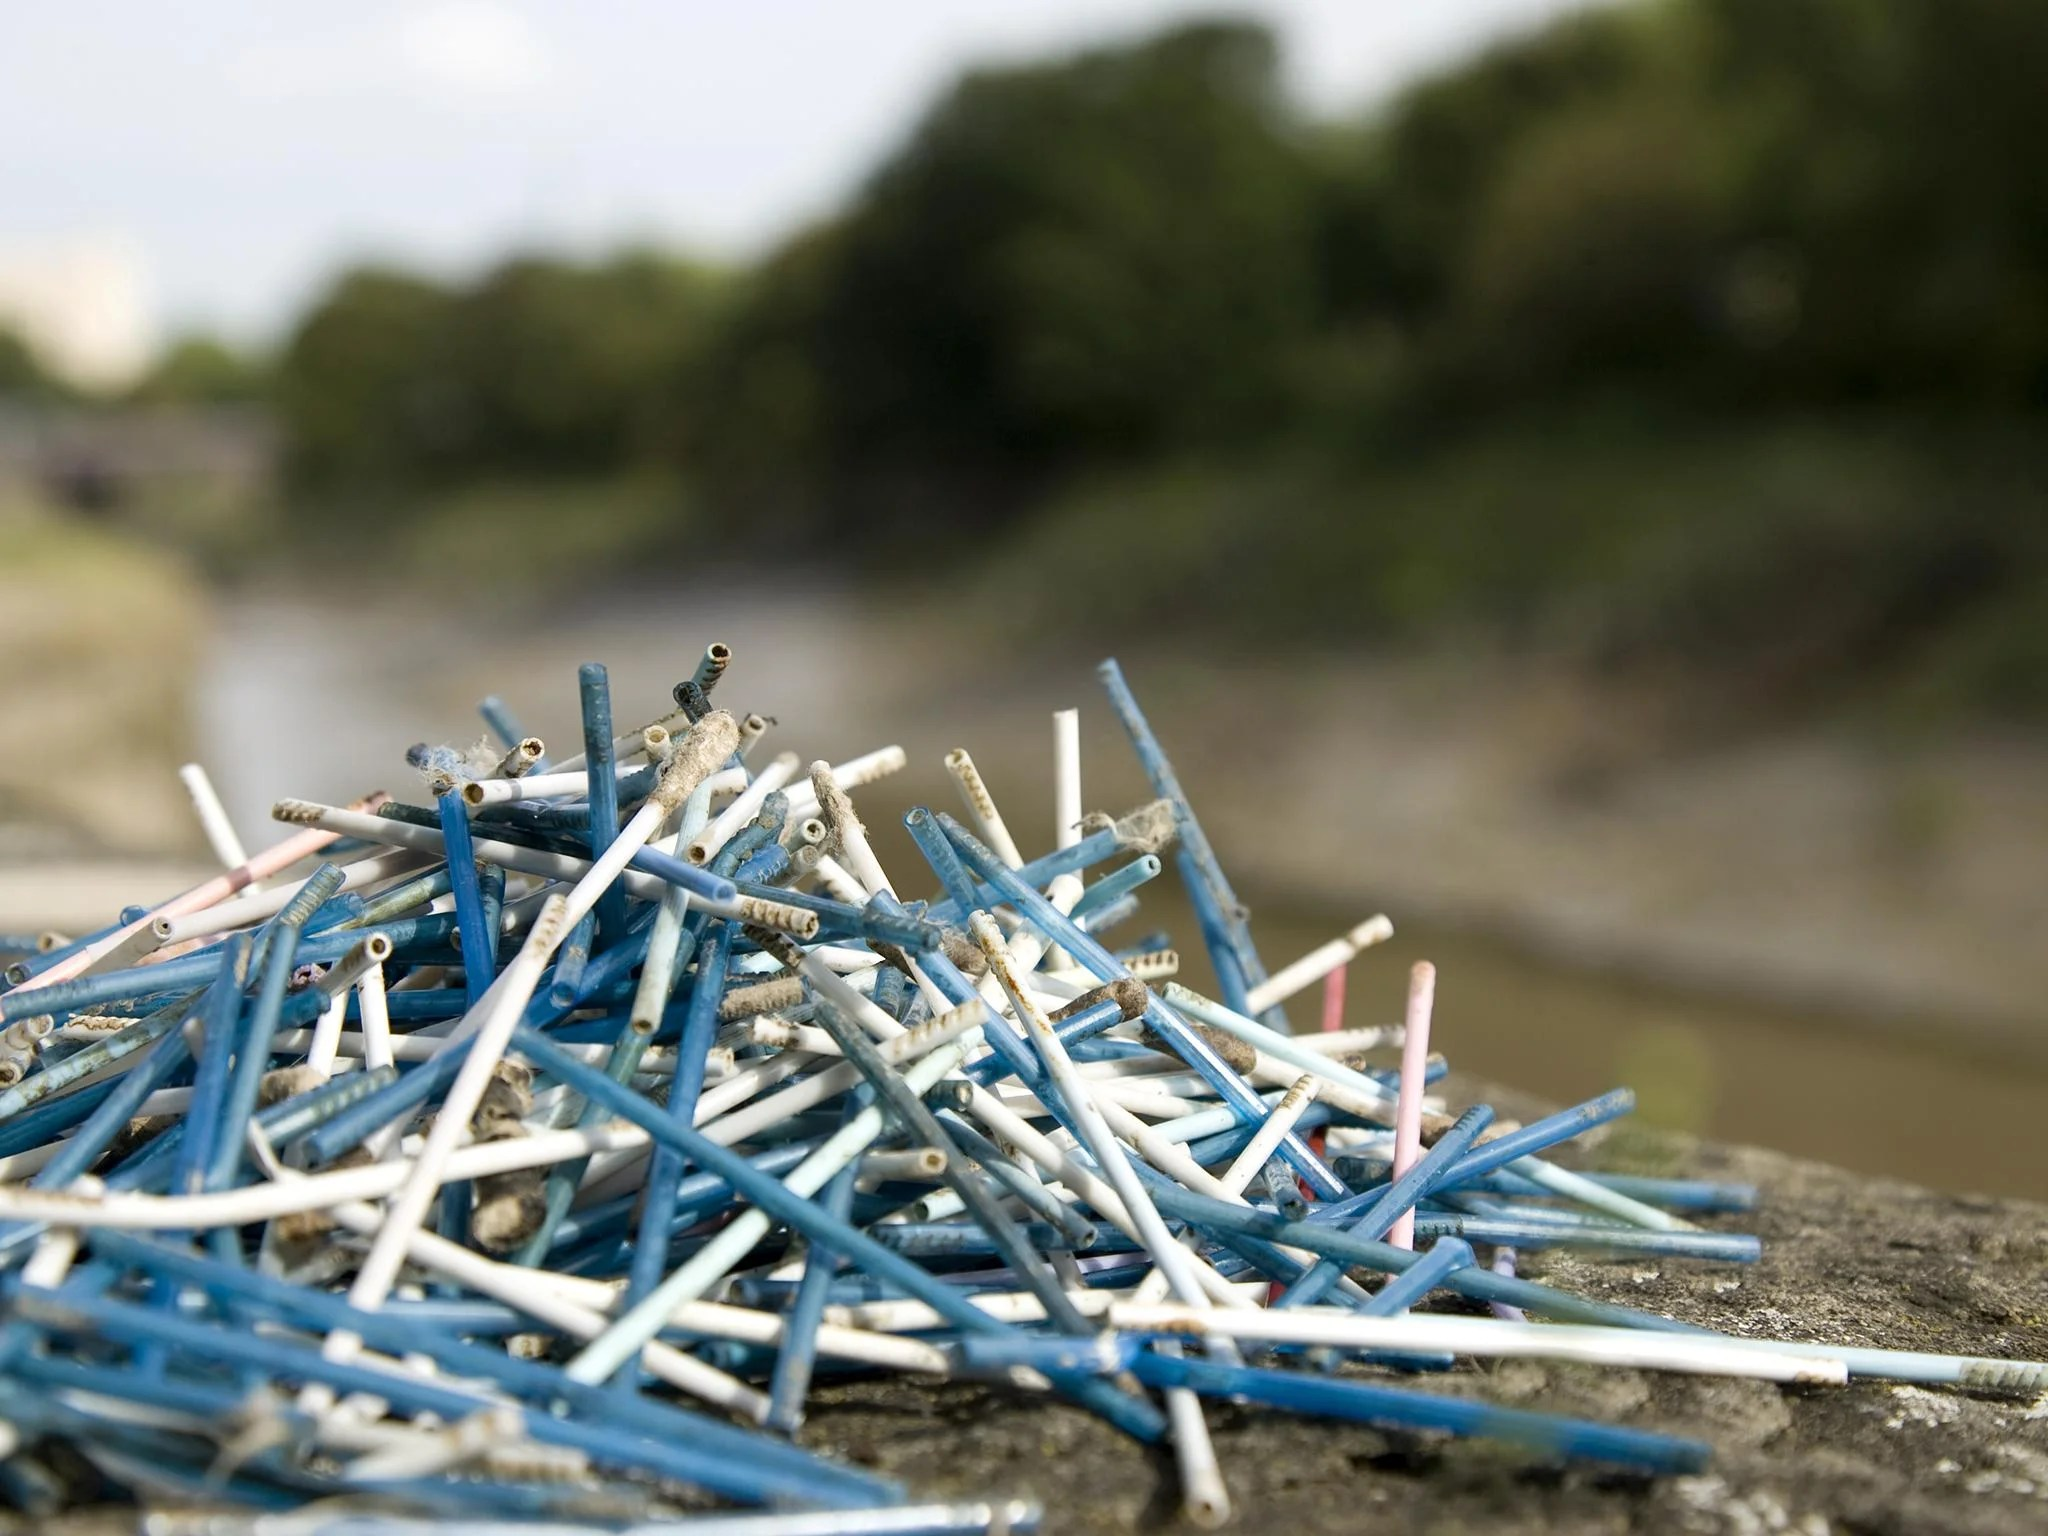 Johnson Amp Johnson Will Stop Selling Plastic Cotton Buds In Half The World To Help Cut Marine